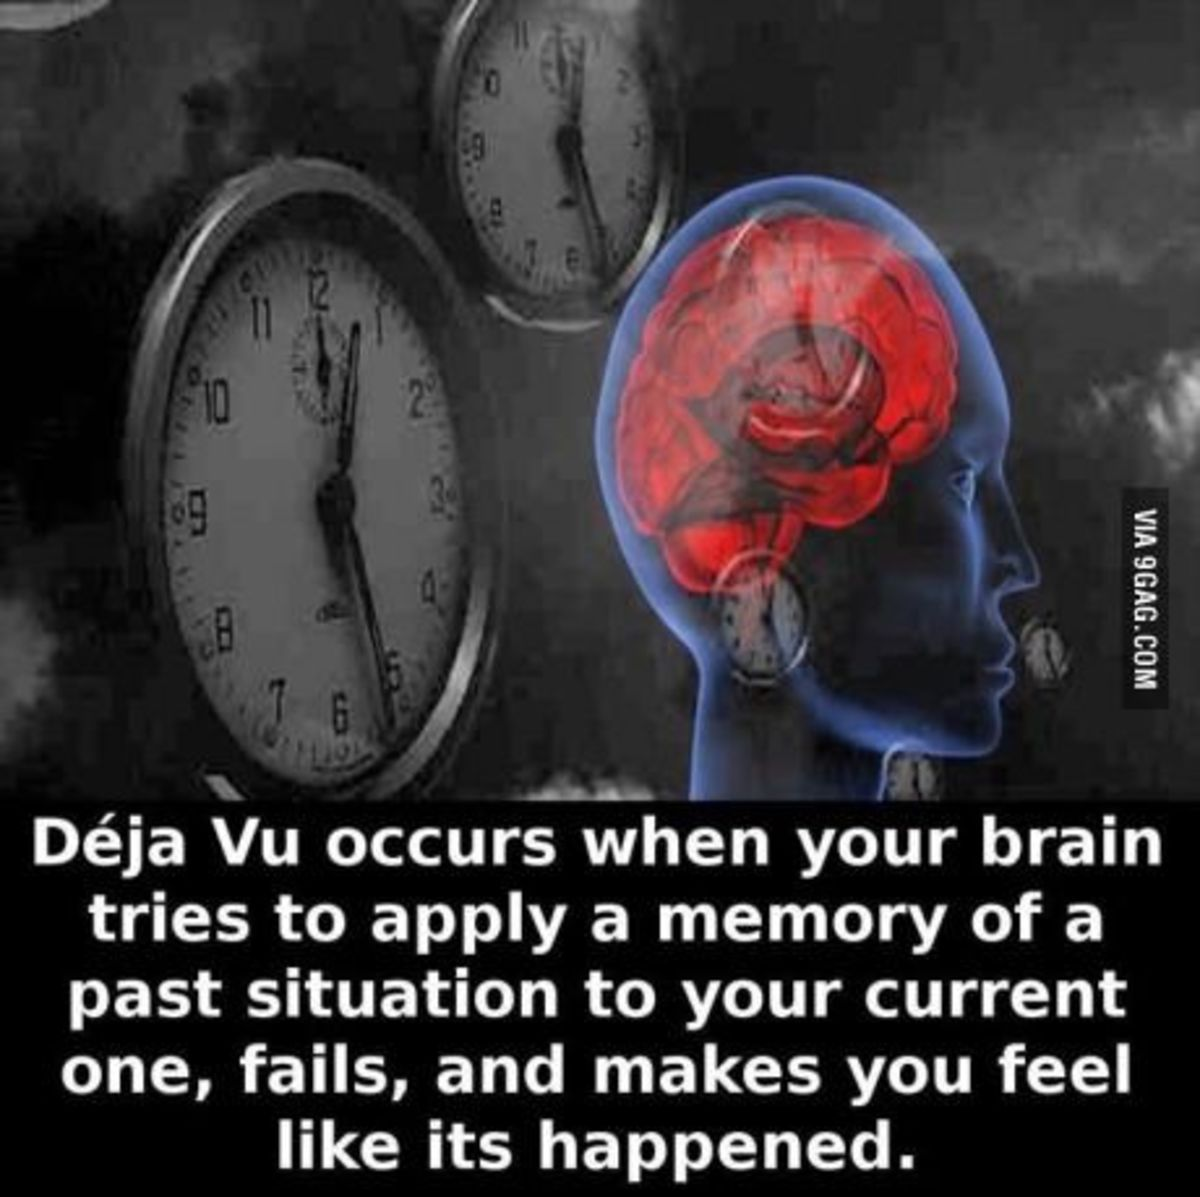 4-reasons-you-experience-deja-vu-4-different-paths-of-life